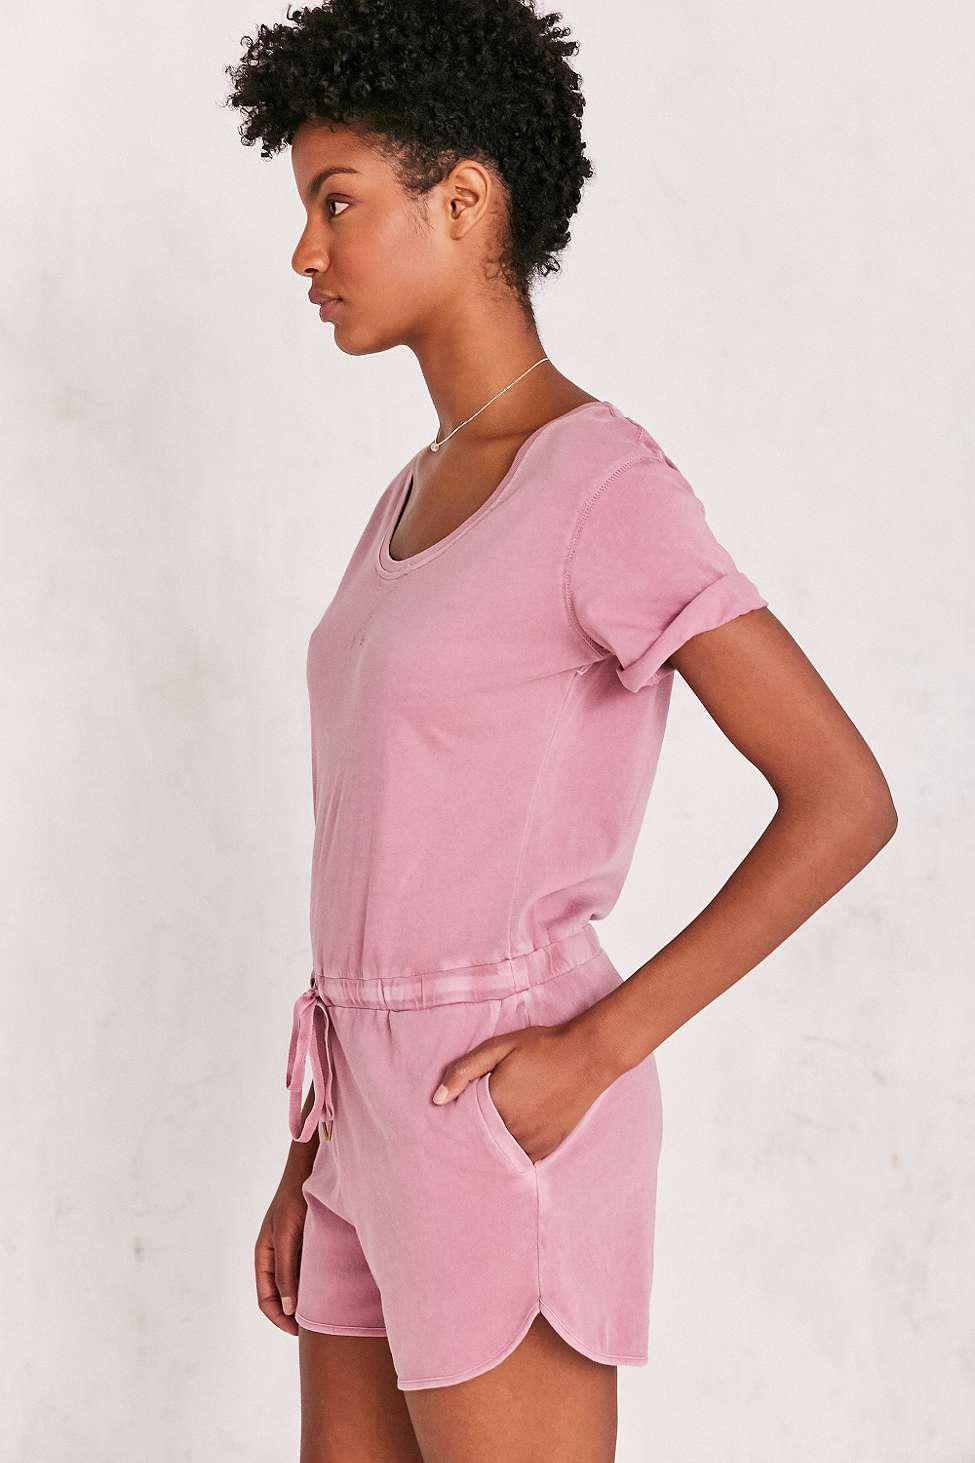 bff01413177e BDG Cuffed Knit T-shirt Playsuit - Womens S in Purple - Lyst